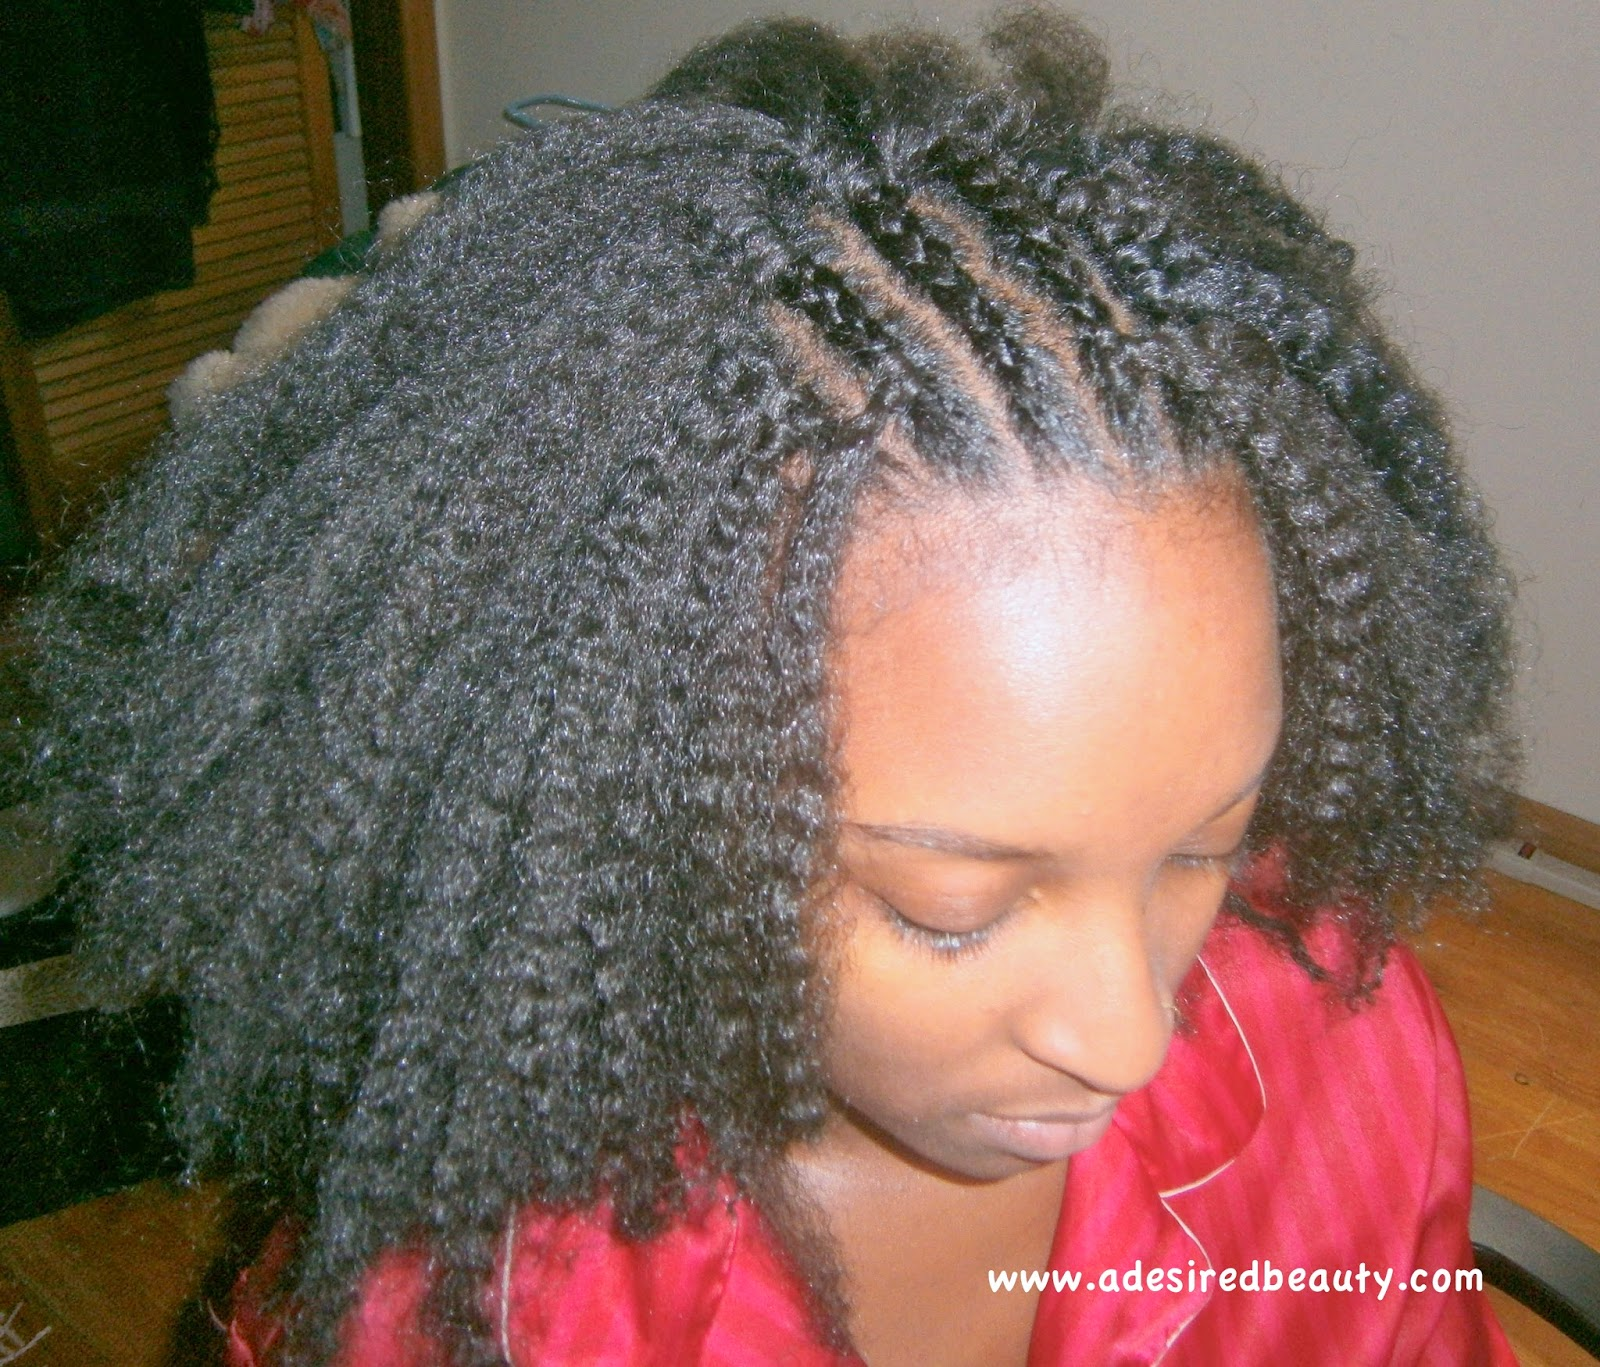 Crochet Braids Install : Installing My Sisters Crochet Braids {Inspiring My Own} A Desired ...